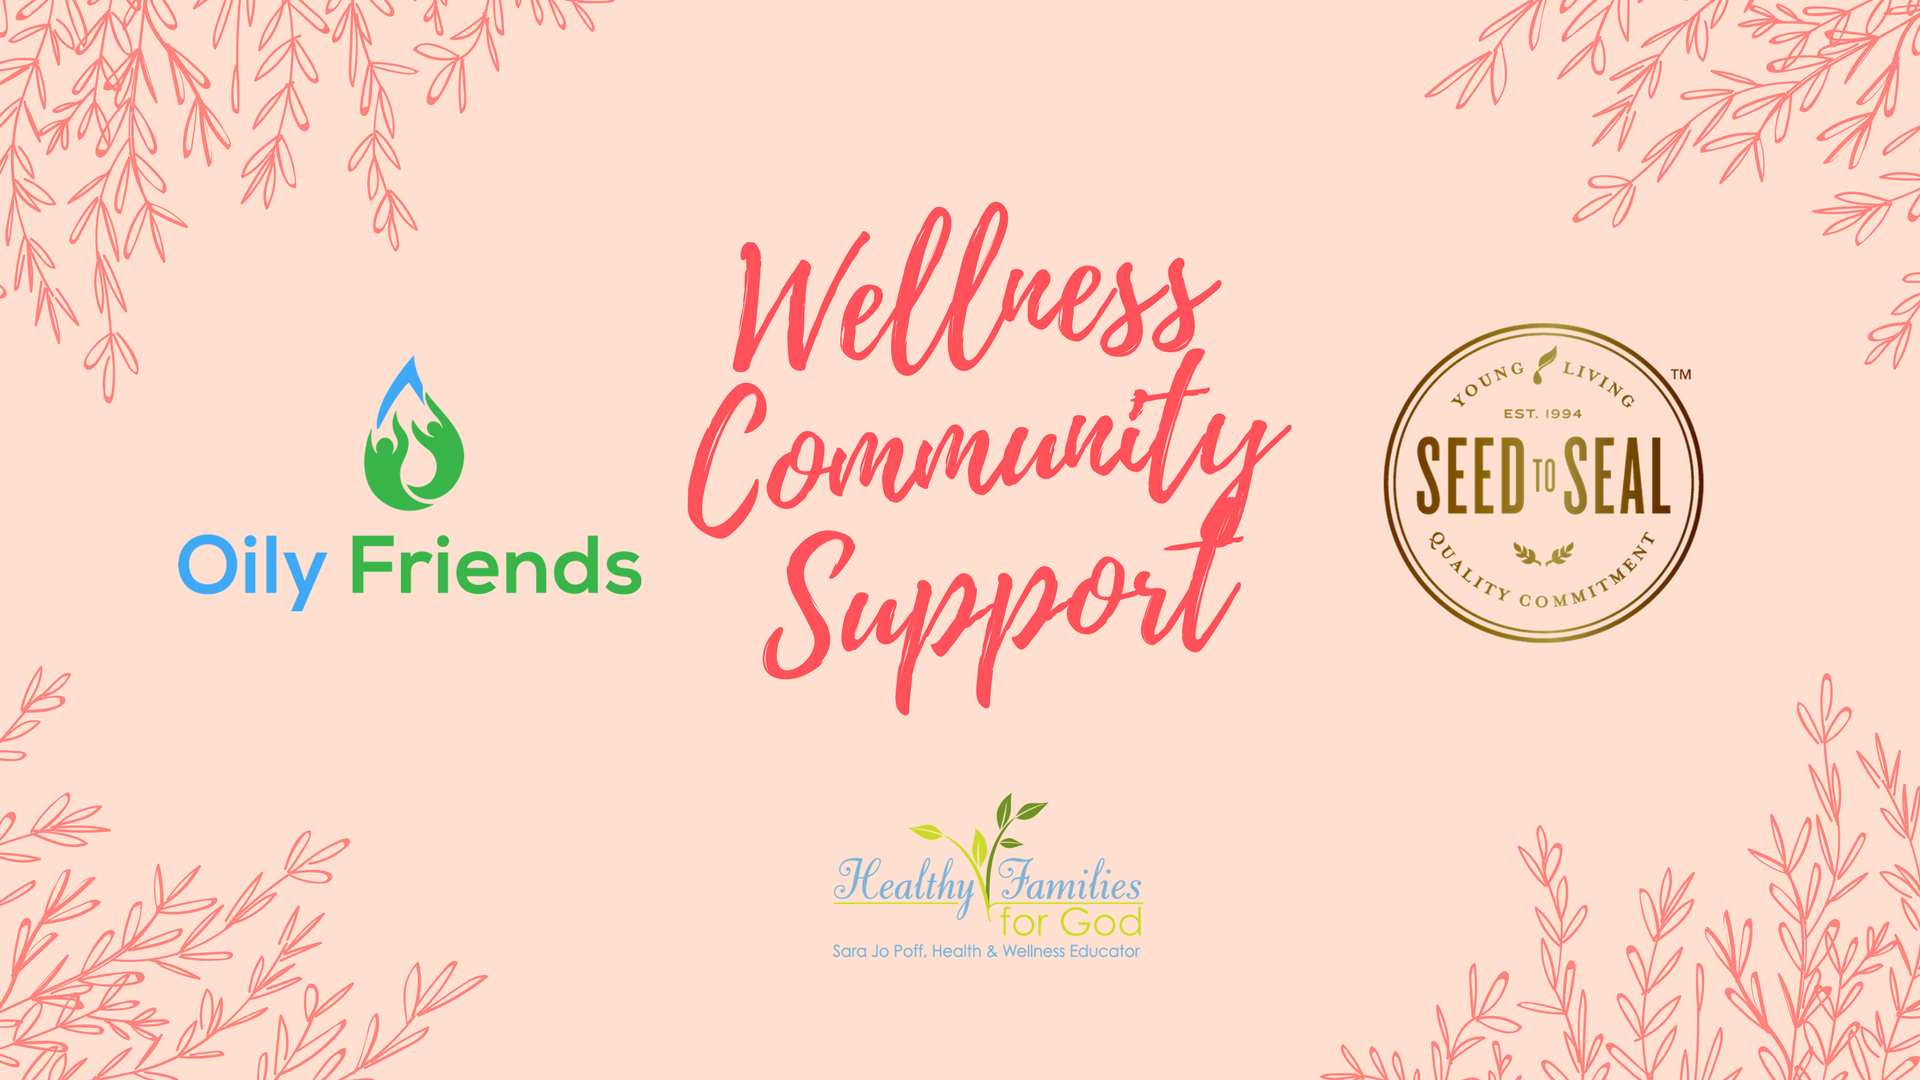 wellness community support.png